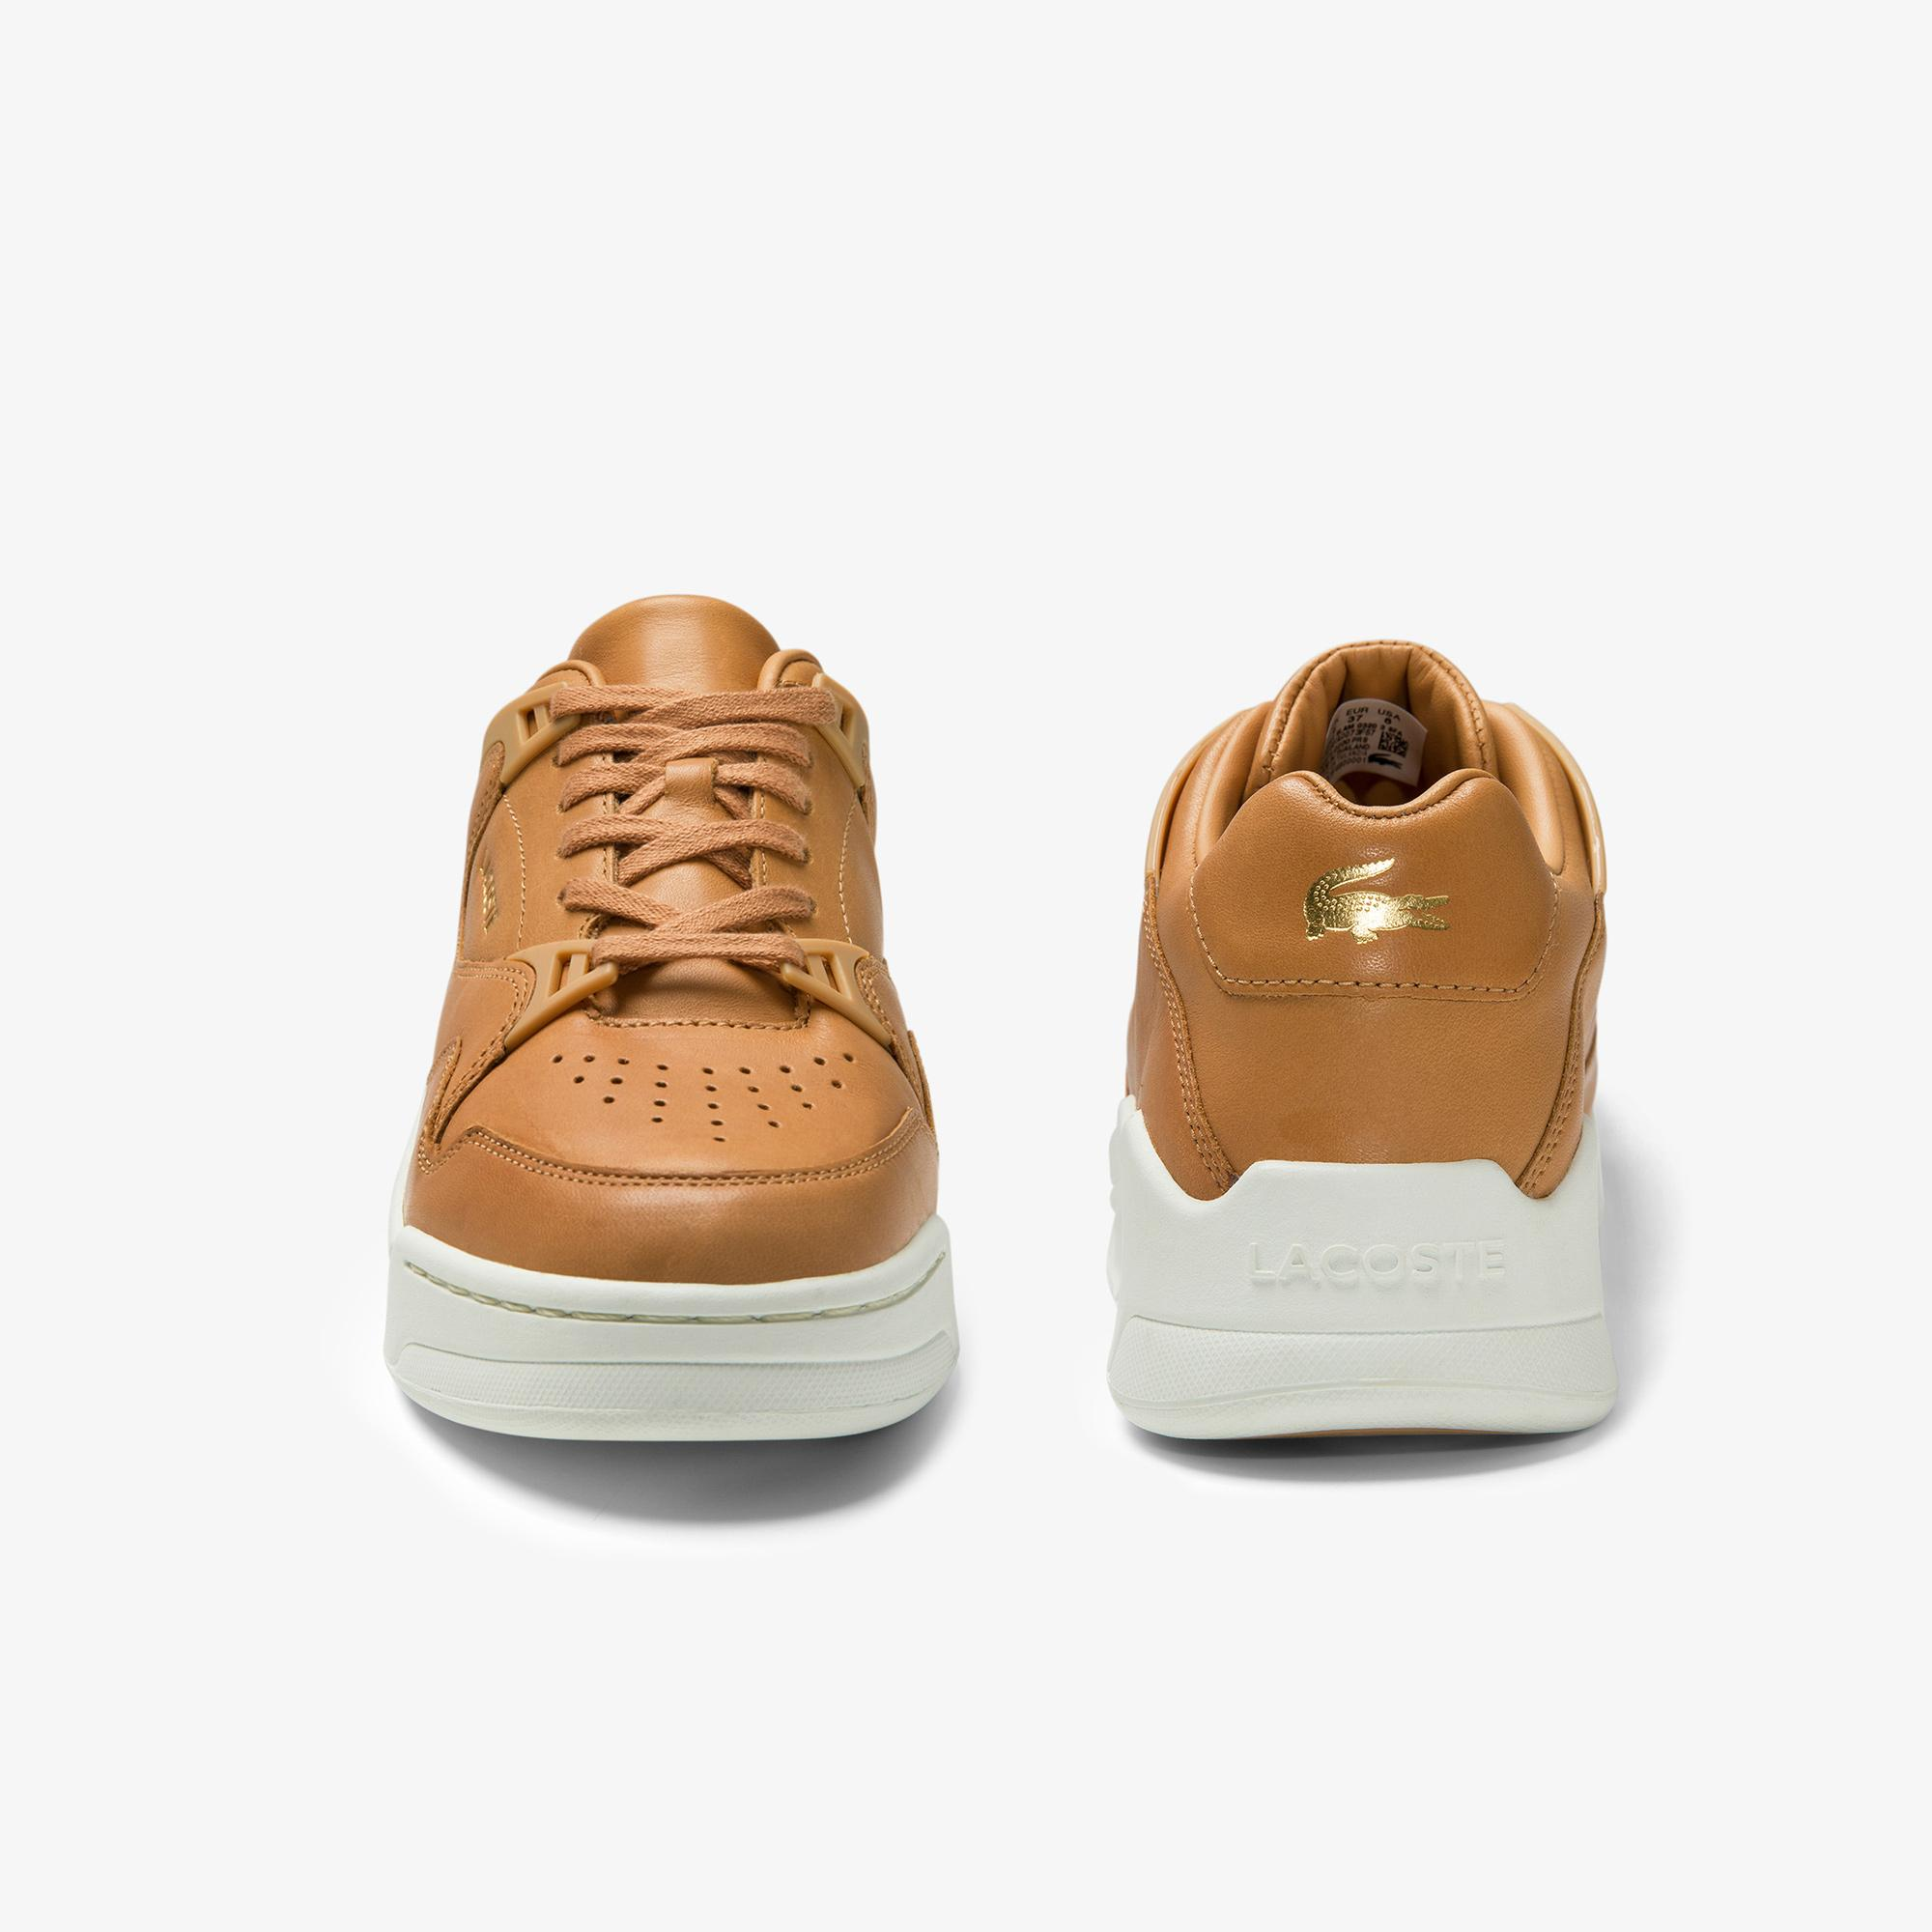 Lacoste Women's Court Slam Leather Sneakers